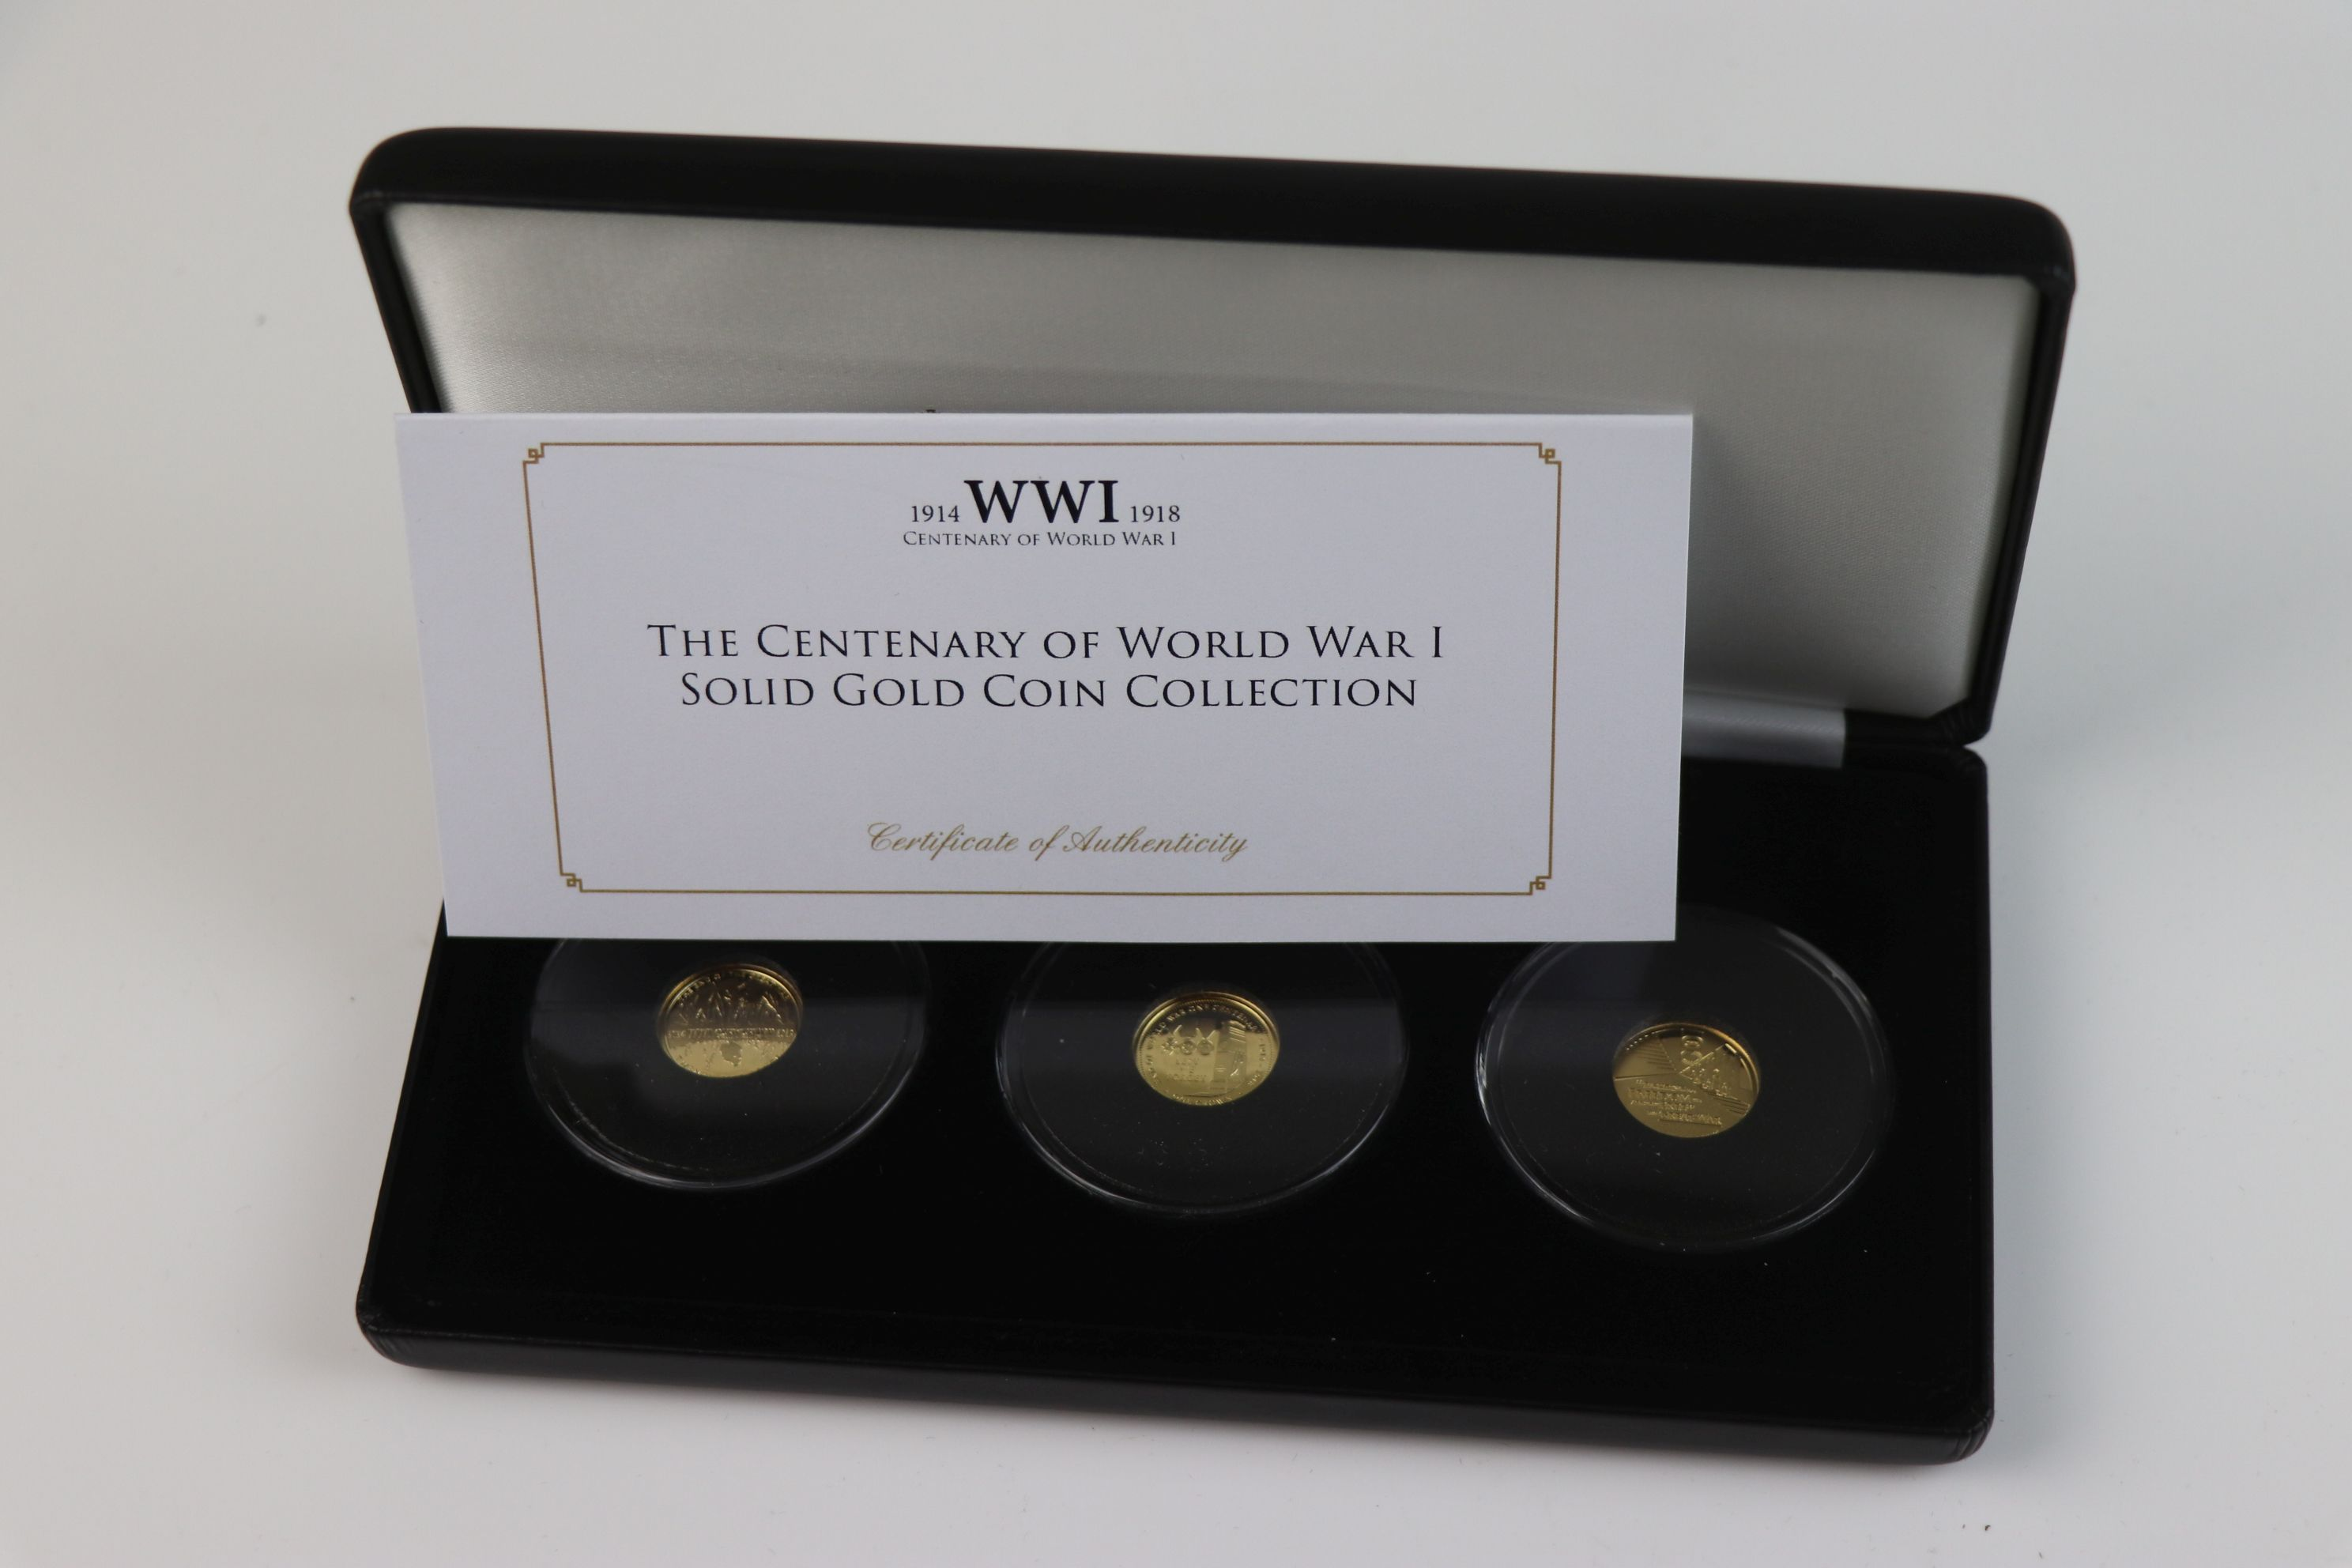 A cased Jubilee Mint limited edition The Centenary of World War One 9ct gold three coin set, - Image 2 of 7